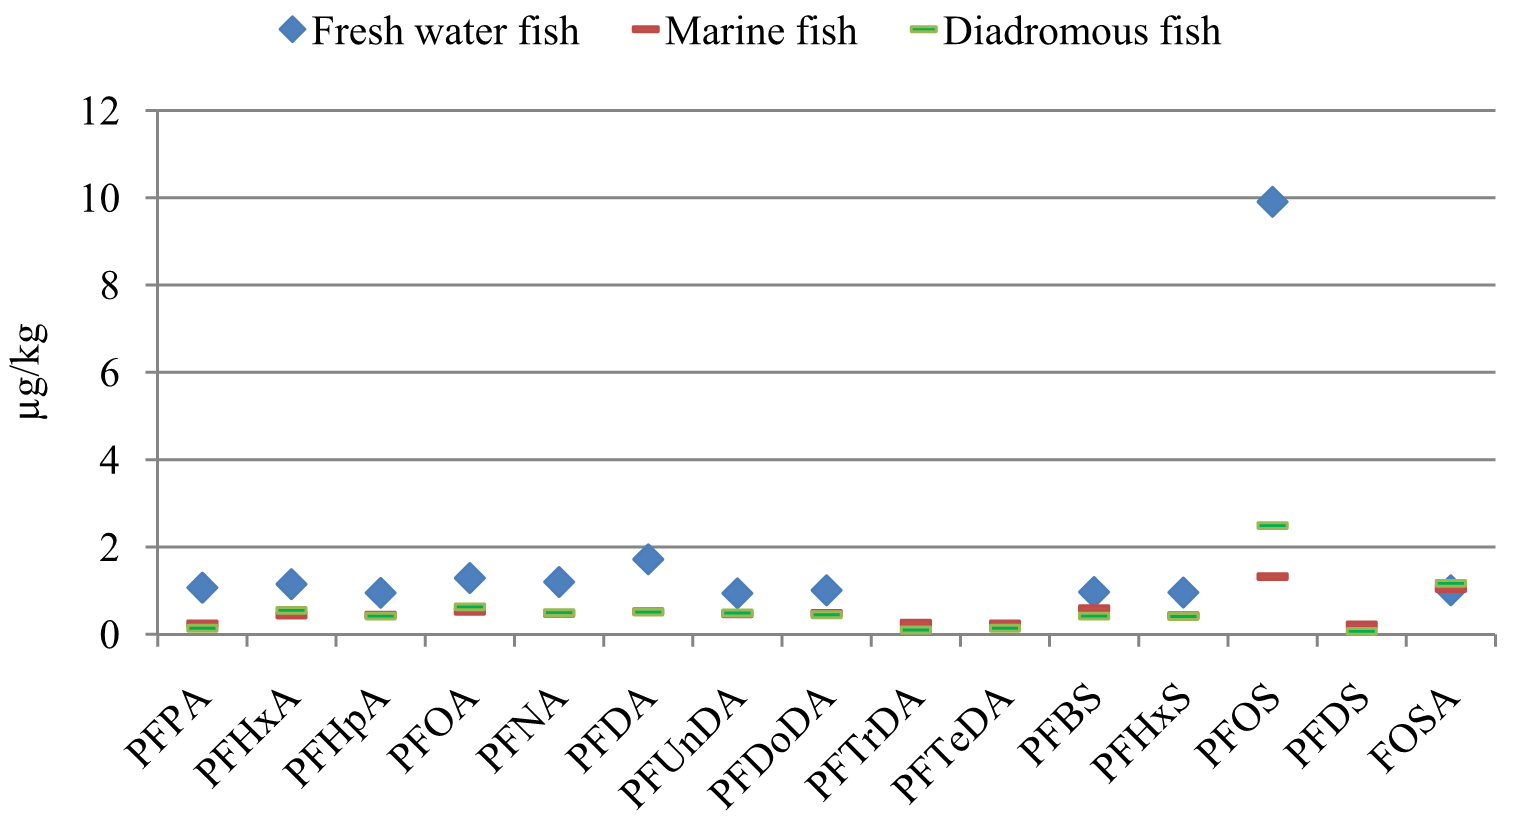 (Figure 9). The results showed consistently higher mean concentrations in fish from fresh water. Diadromous fish had mean concentrations slightly higher or similar to the marine fish.